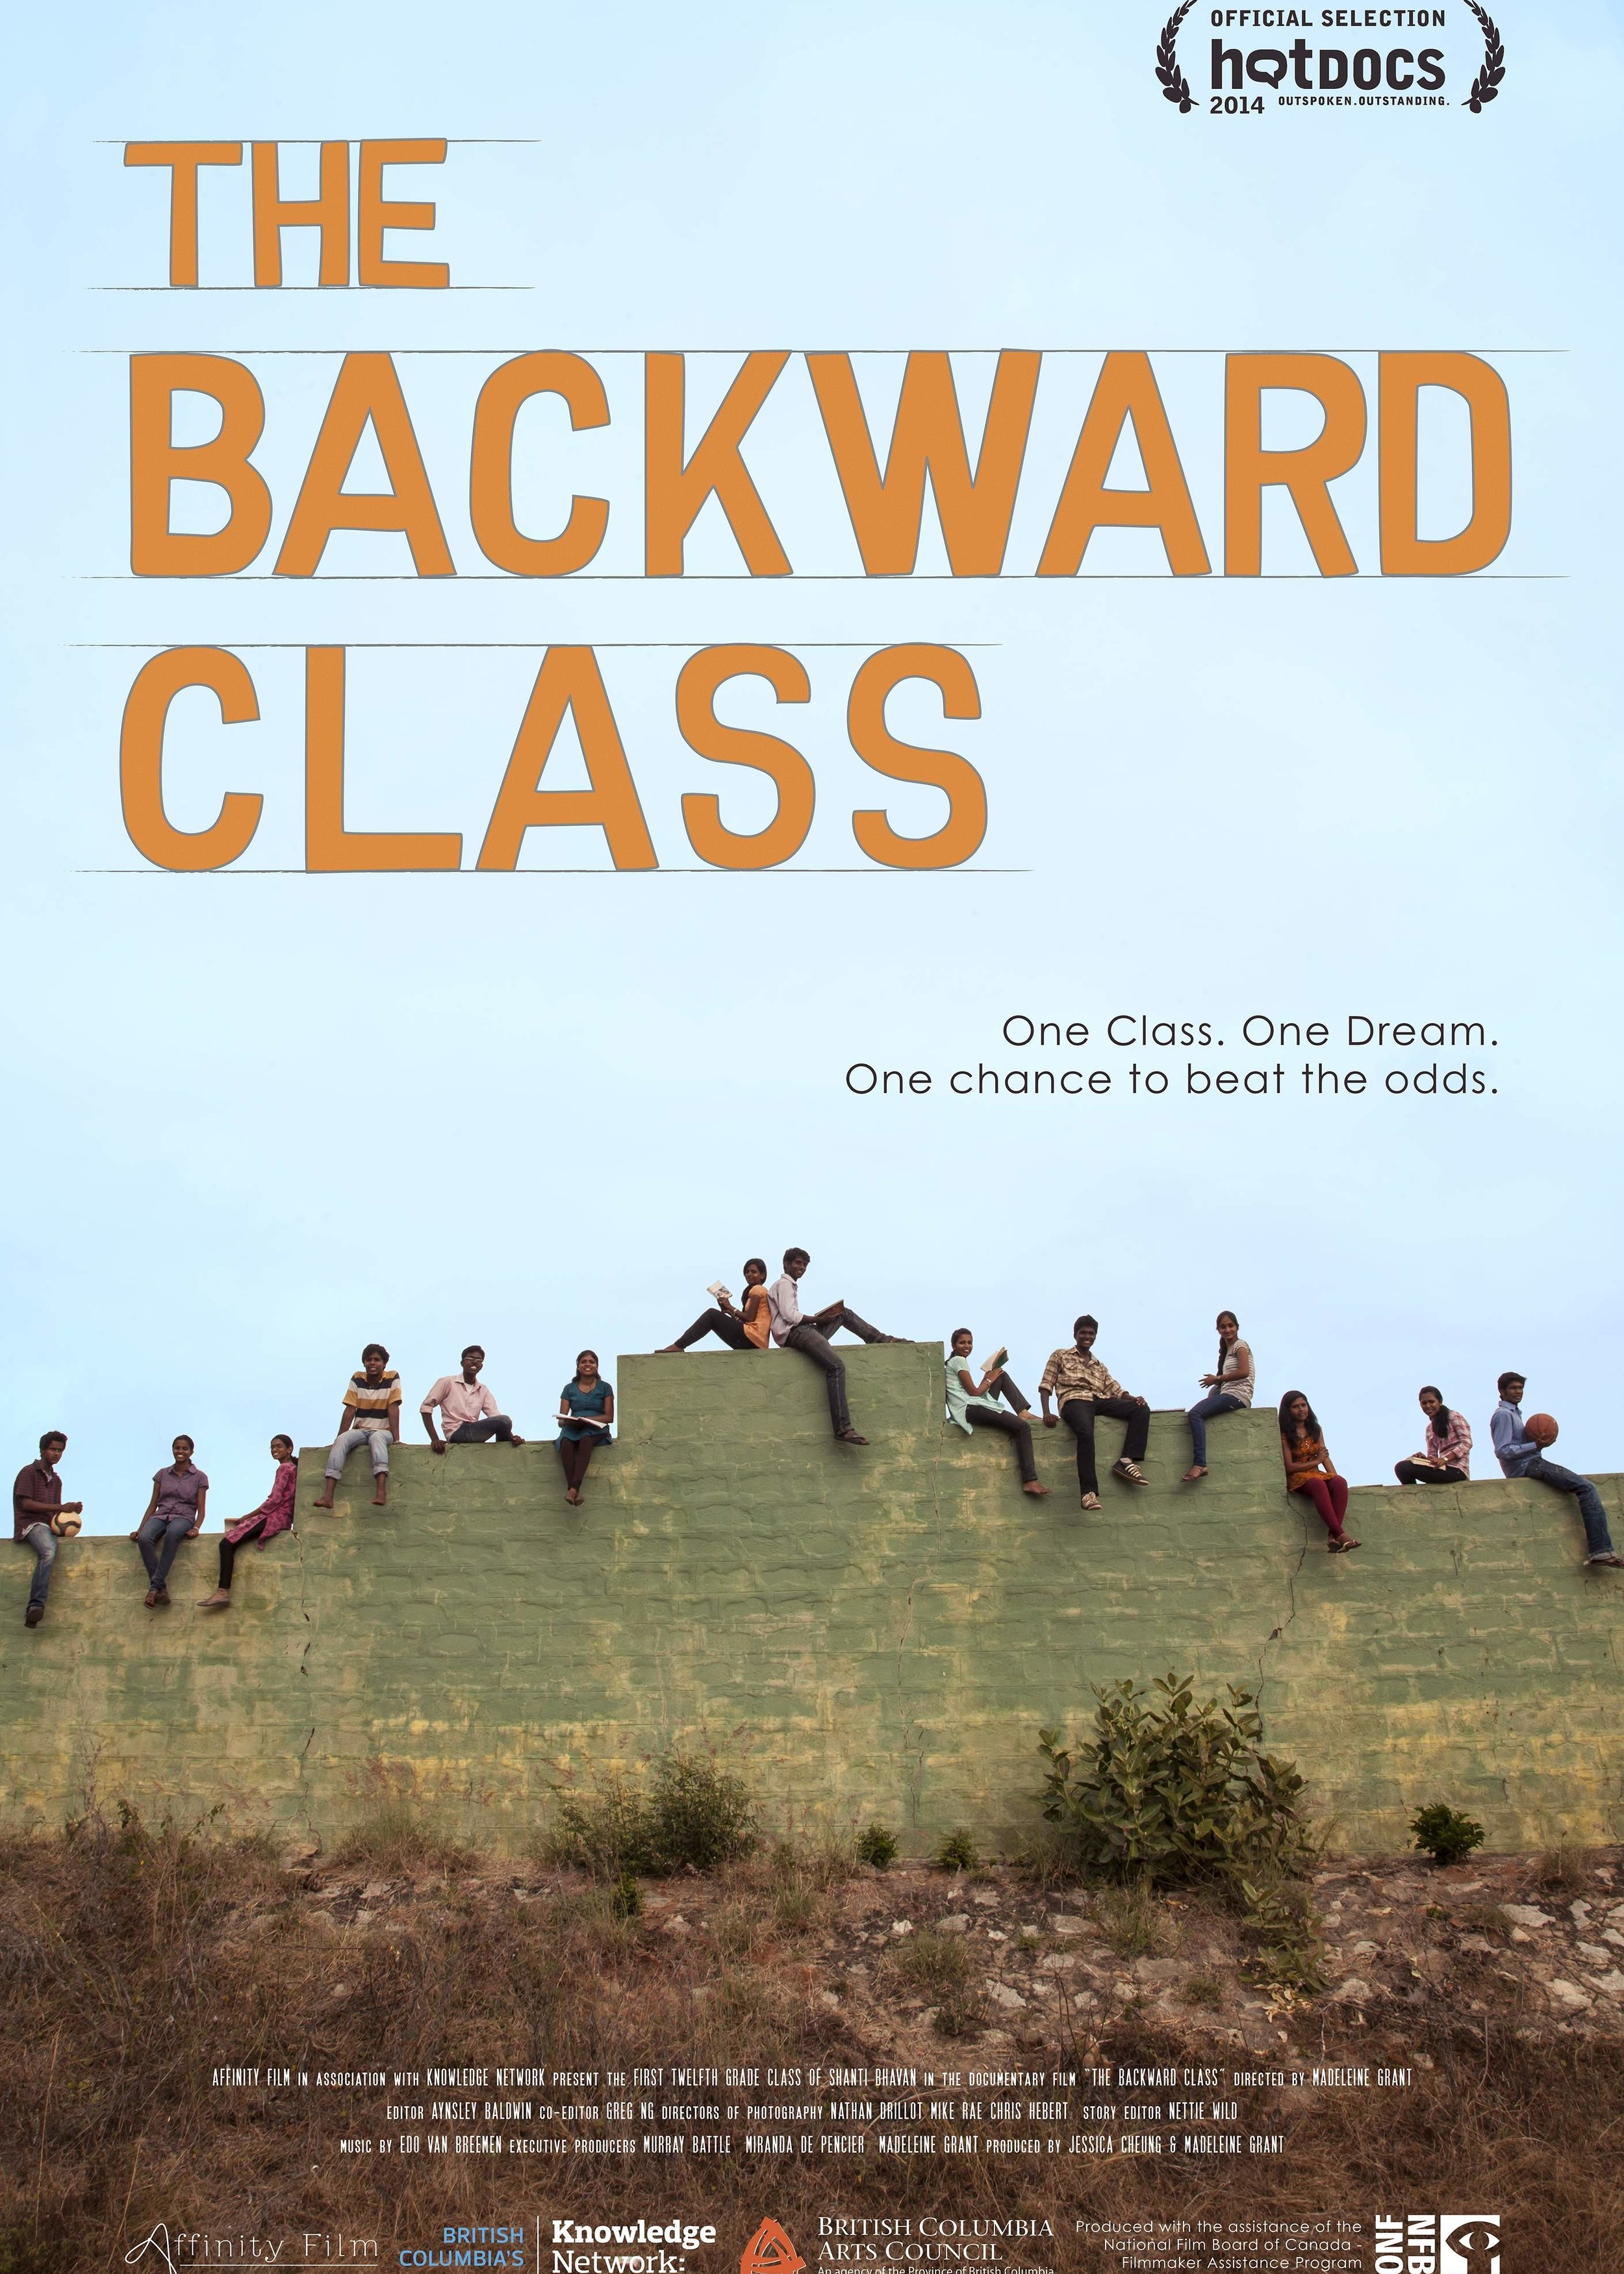 The Backward Class - 2014, Canada/India, 91 min, in EnglishThe Backward Class is a feature length documentary featuring the first class of dalit ('untouchable') caste students to attempt the Indian School Certificate exams & aspire for university.